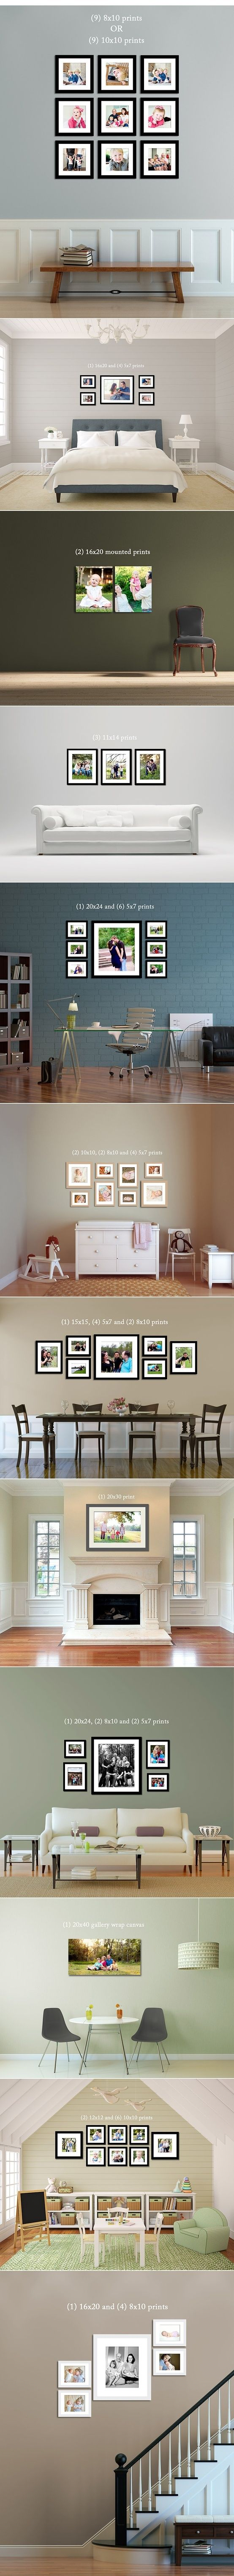 gallery print set ideas...for the big open wall